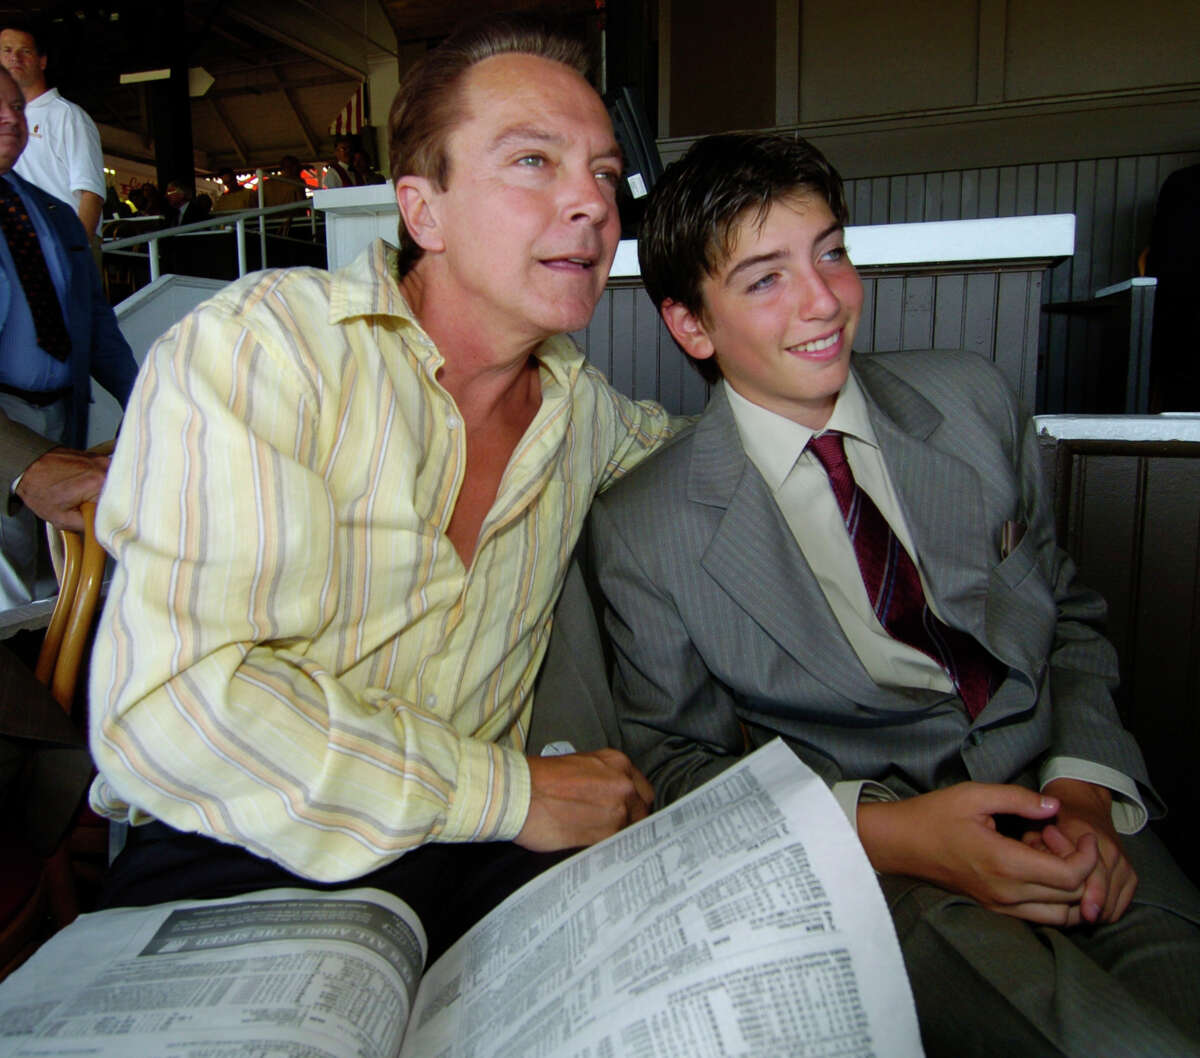 Times Union Staff Photo by Skip Dickstein Entertainer David Cassidy with his son Bo enjoy the day at the Saratoga Race Course in Saratoga Springs, New York July 29, 2005.